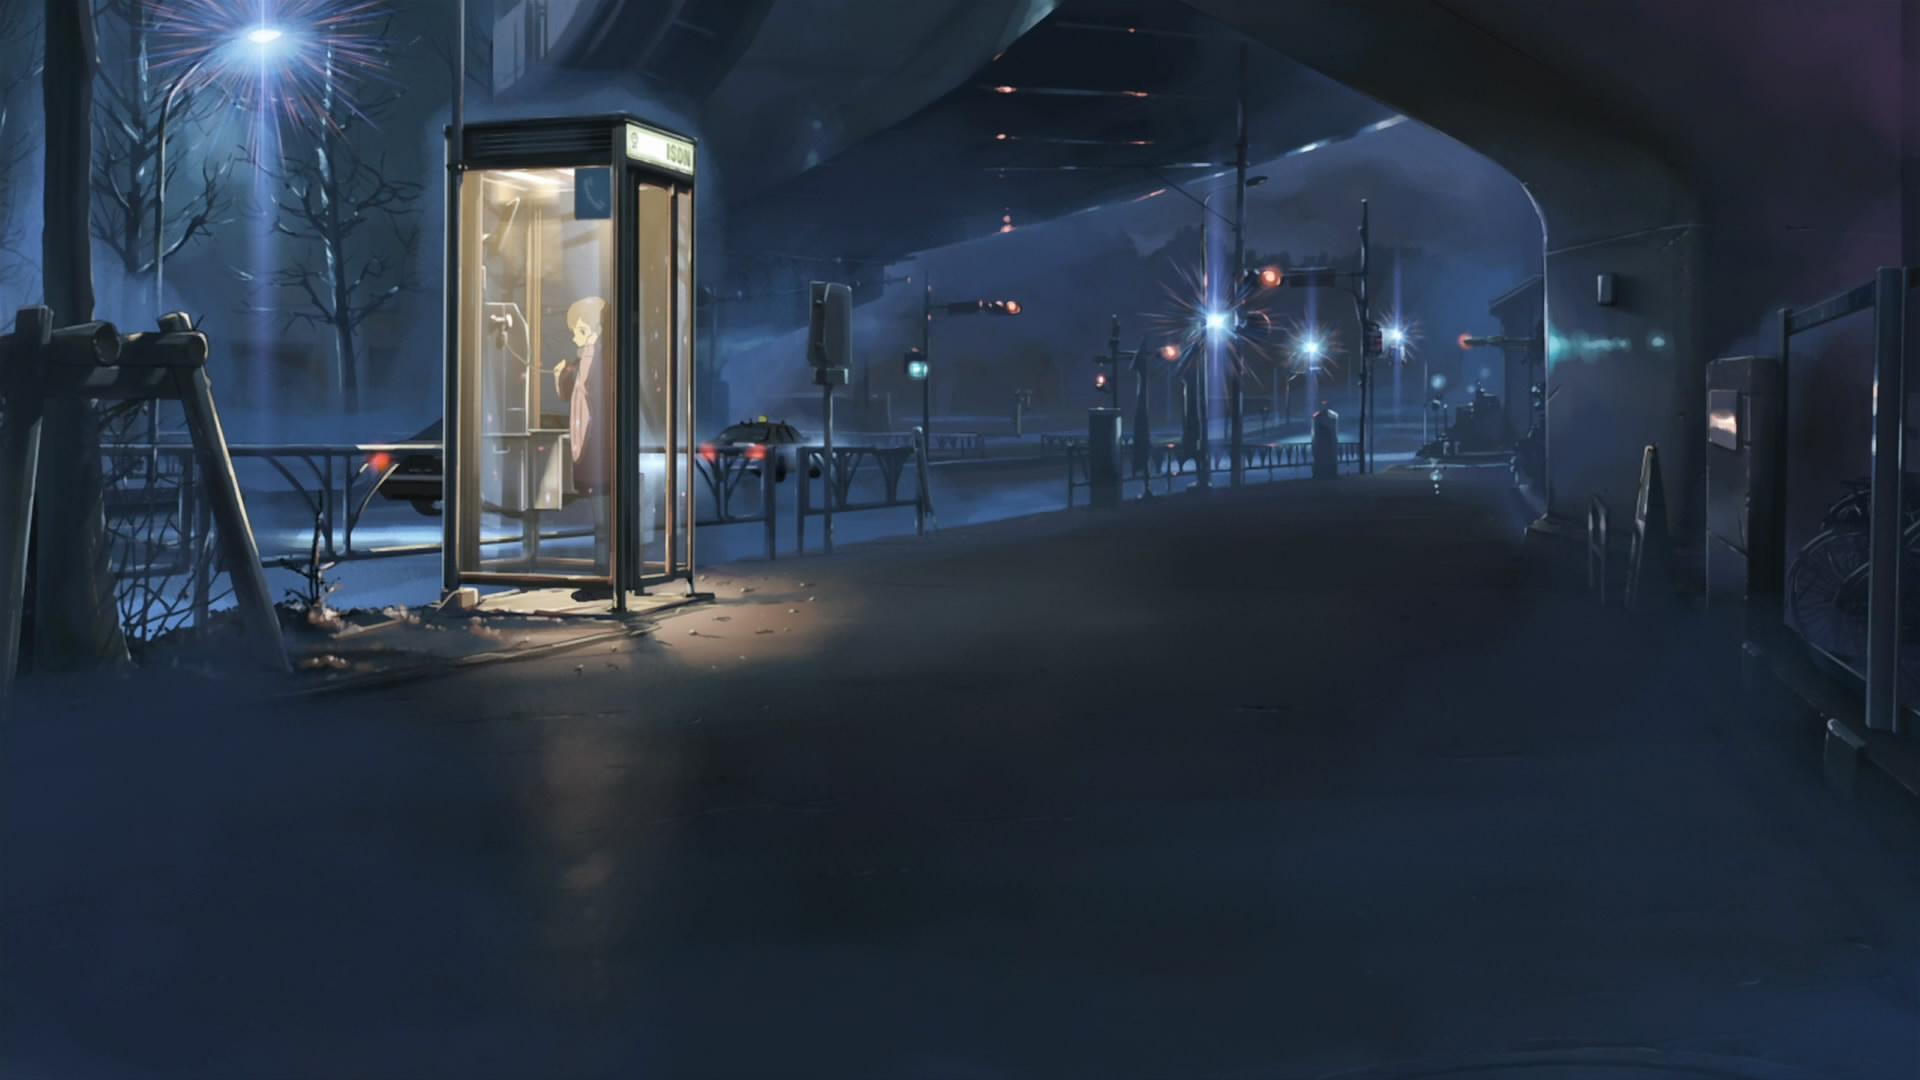 5 Centimeters Per Second Full HD Wallpaper and Background